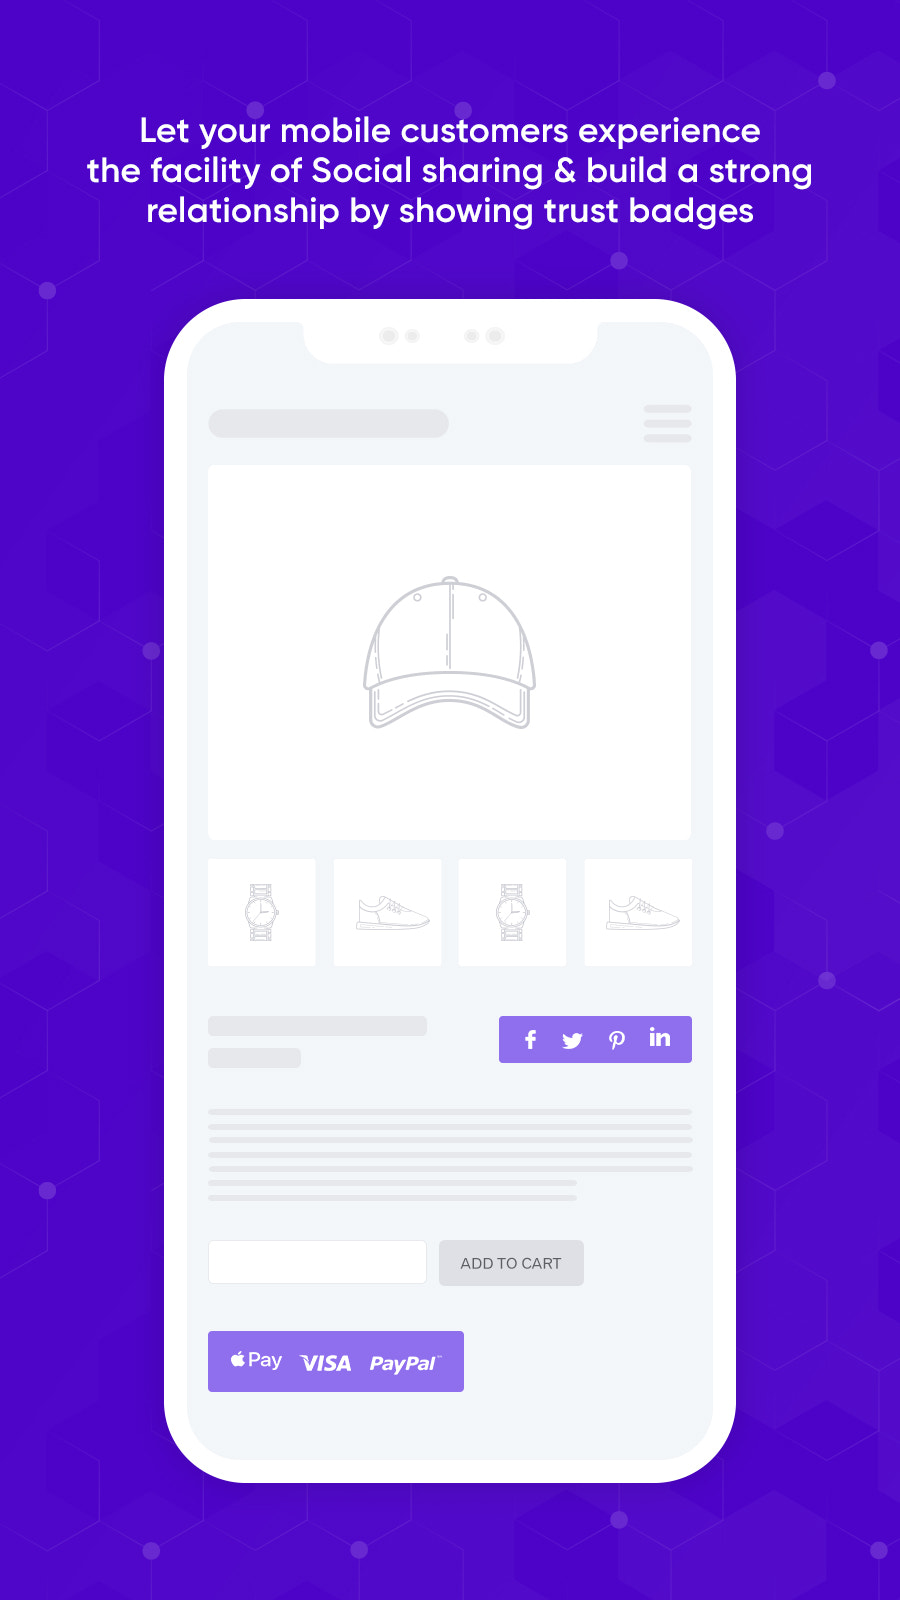 quickhunt-mobile-trust-badges-and-social-sharing